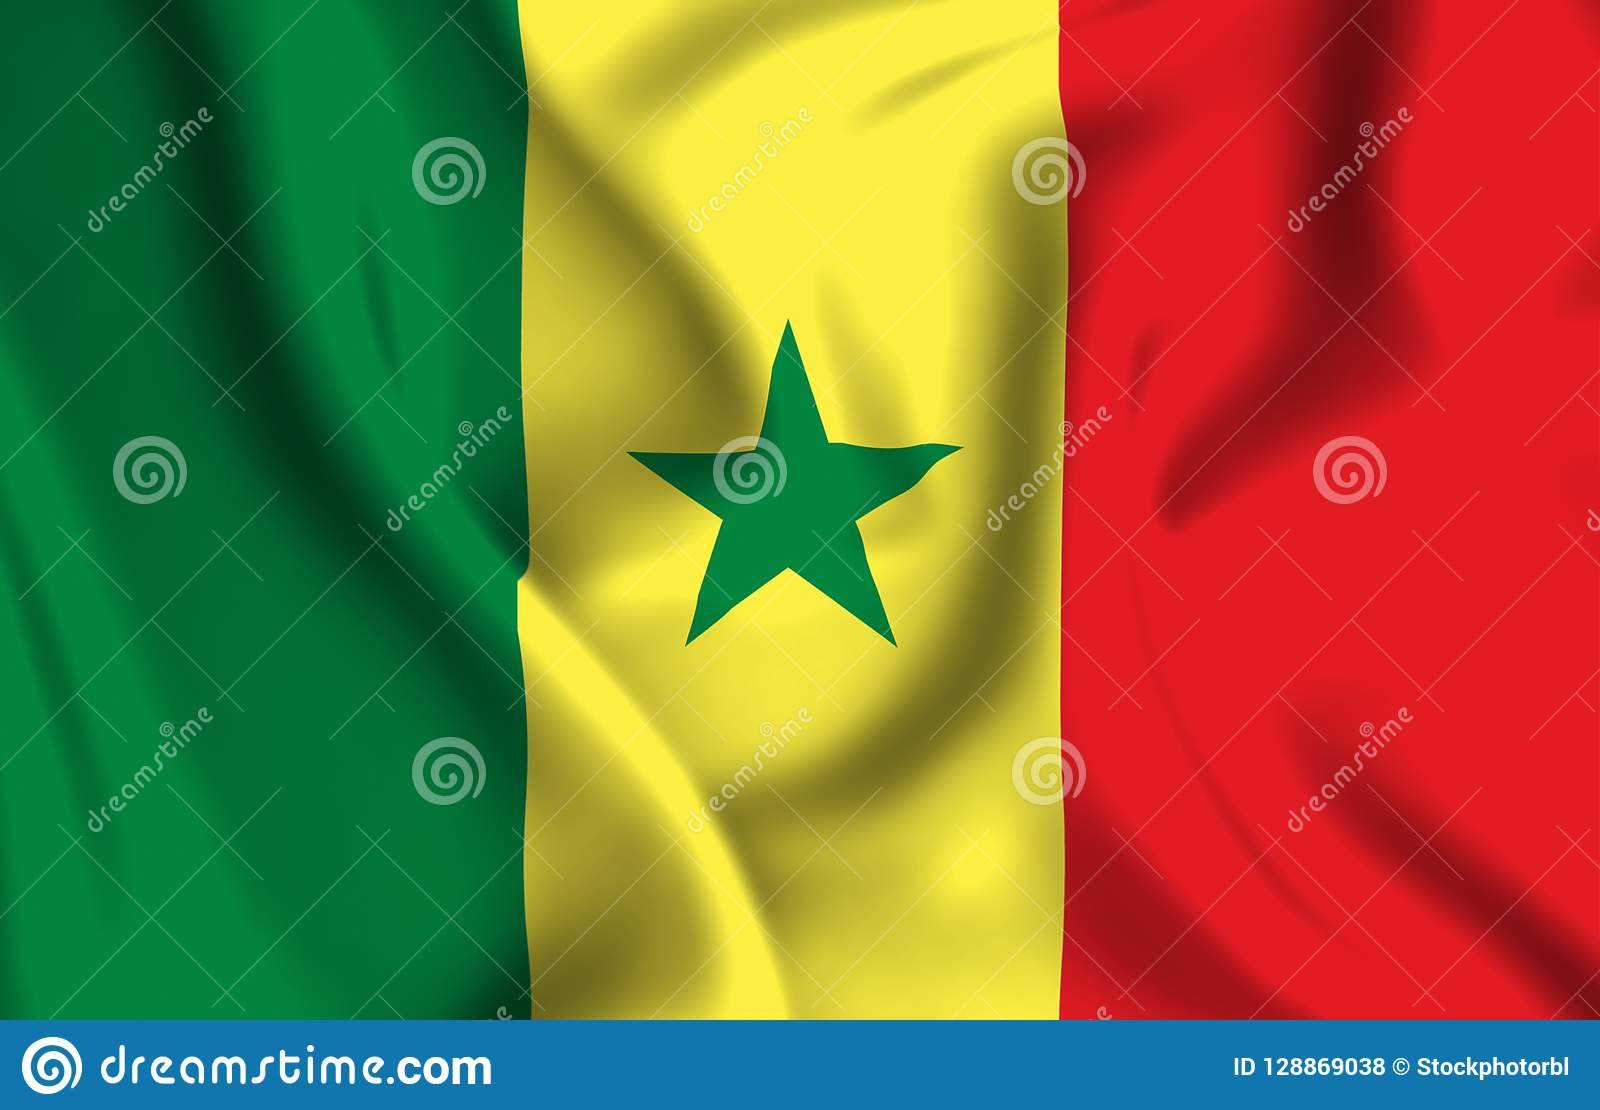 Illustration de drapeau du Sénégal